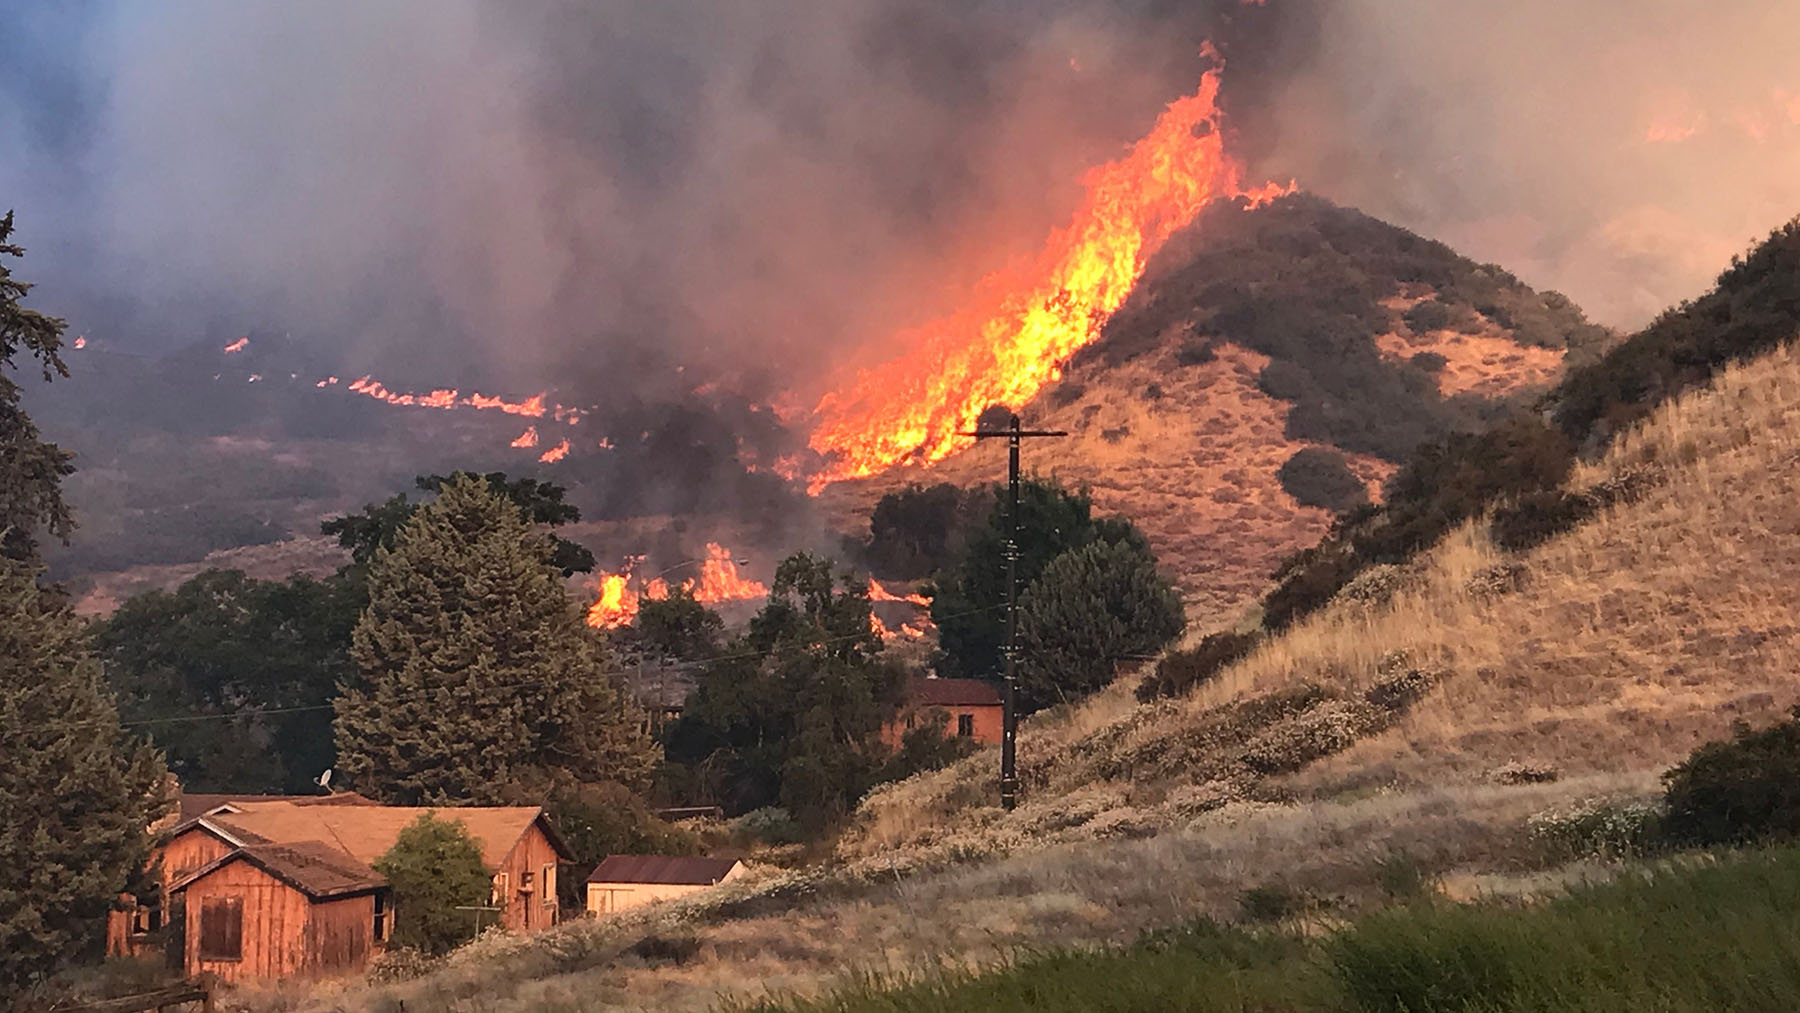 Flames burn through a canyon as part of the Apple Fire on August 2, 2020. Firefighters are working to contain the blaze in Riverside County. (Photo courtesy of the San Bernardino Fire Department)